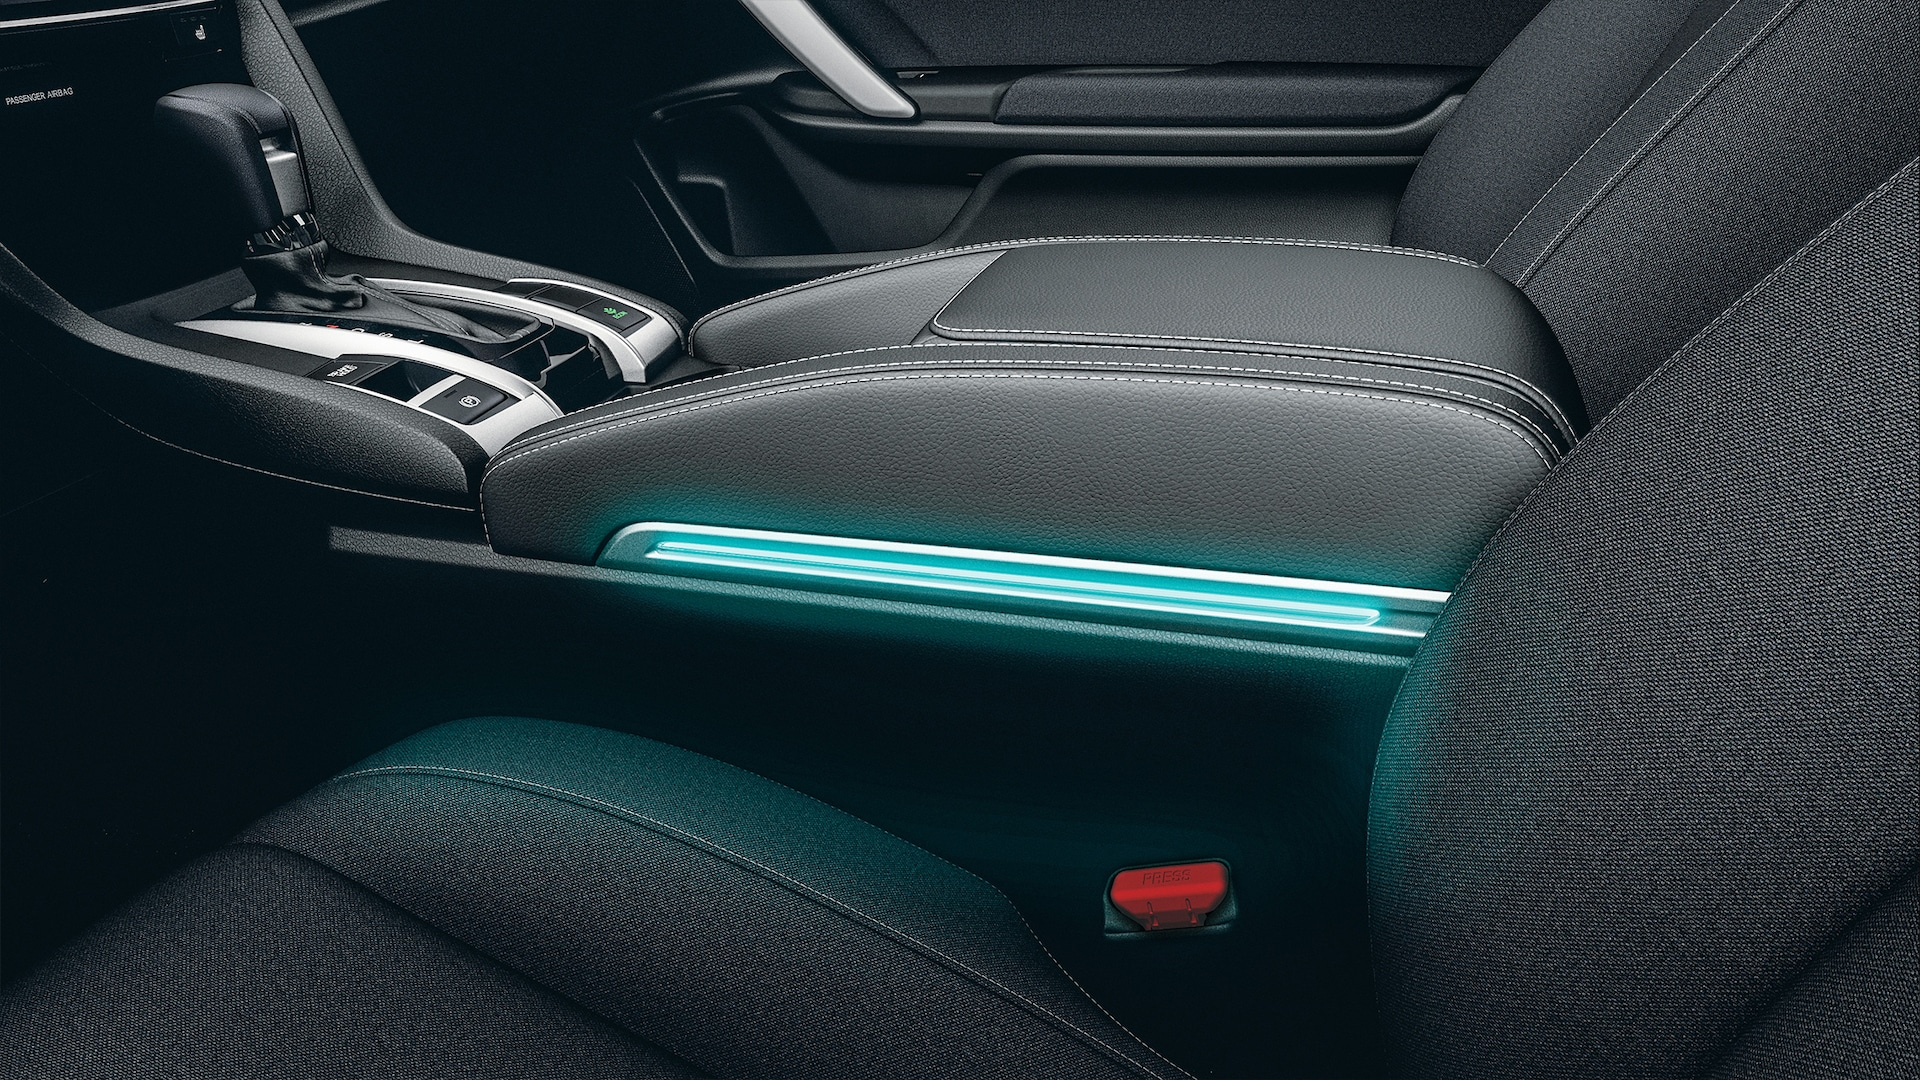 Accessory armrest illumination detail in the 2020 Honda Civic Coupe.